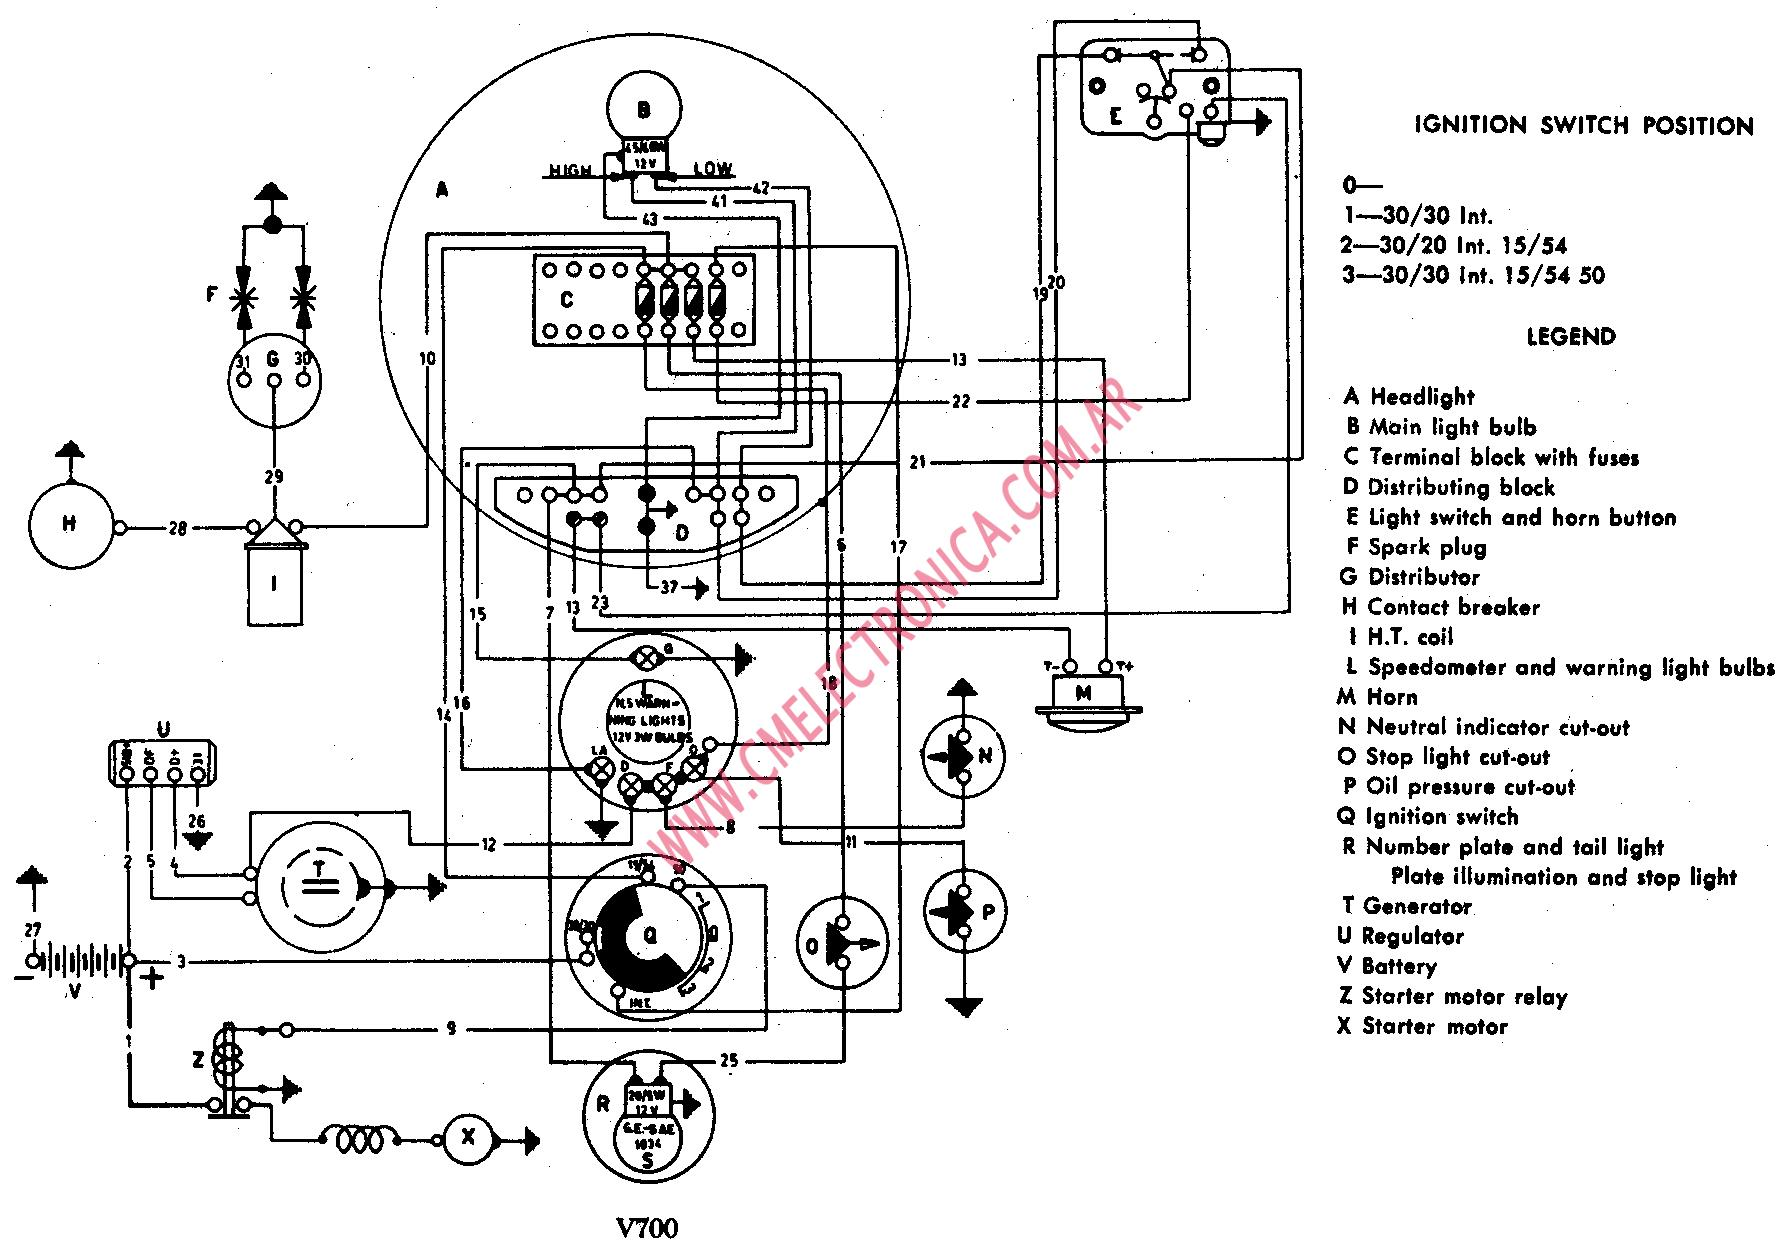 1988 50 hp mercury outboard wiring diagram